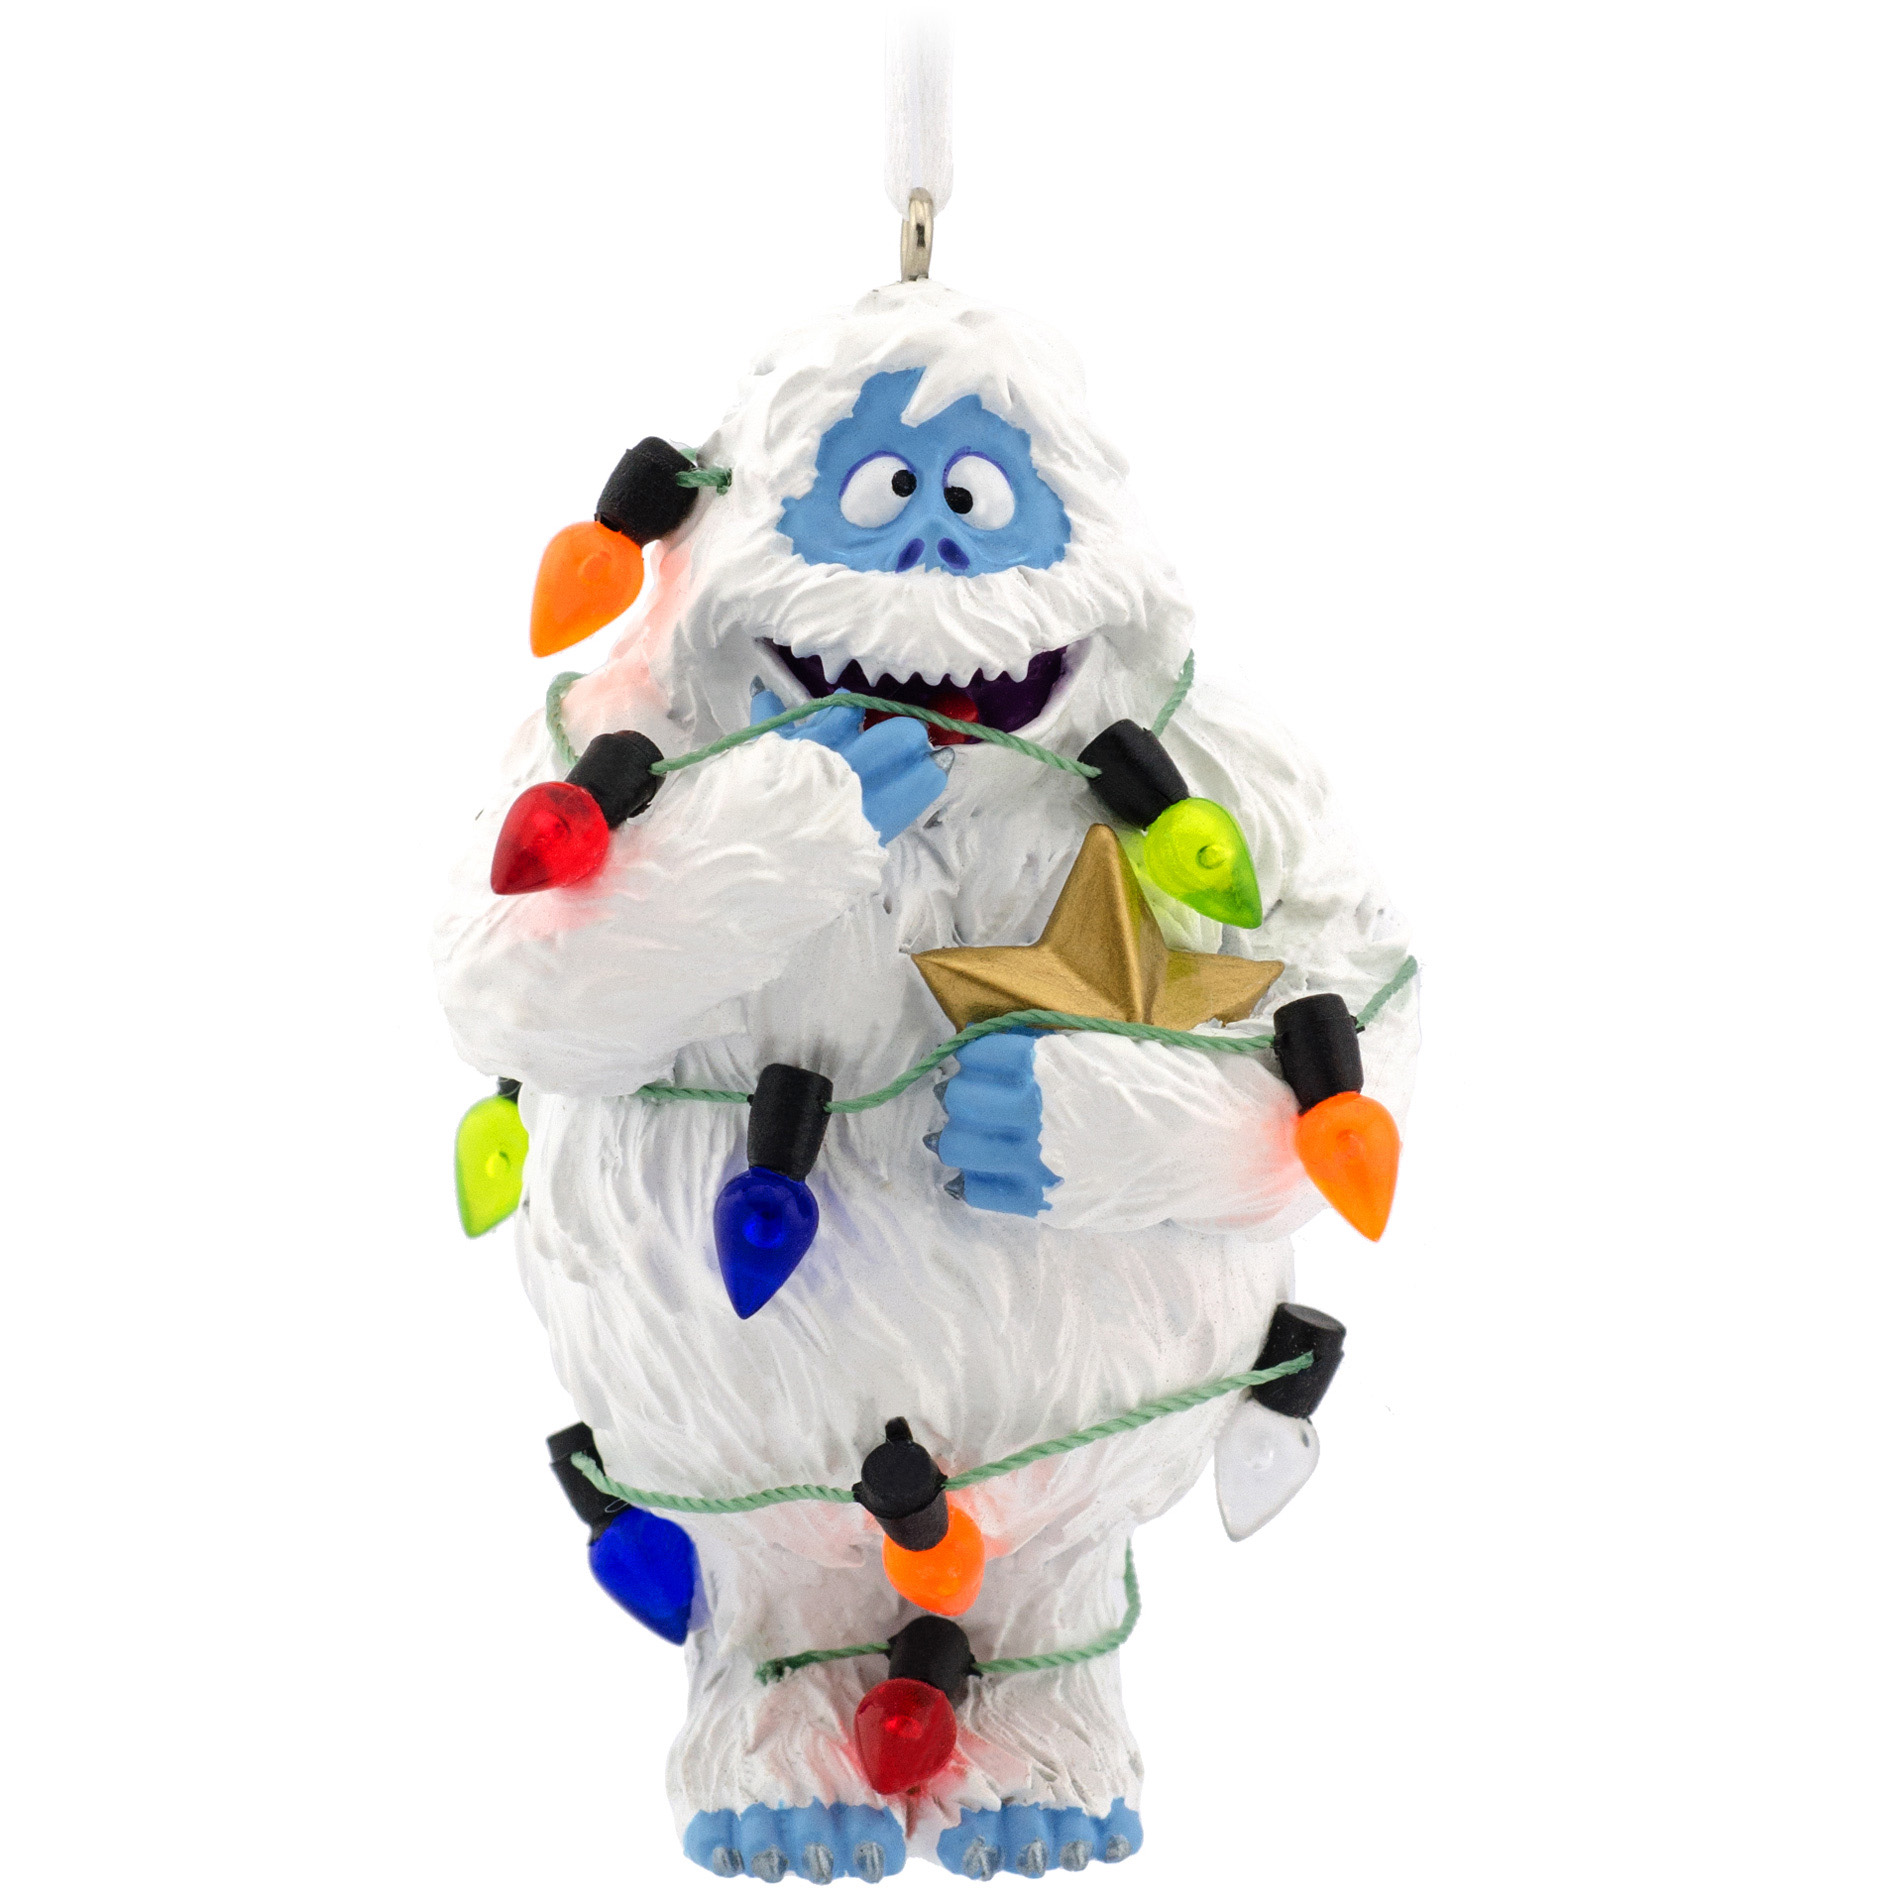 Hallmark Bumble The Abominable Snow Monster Ornament